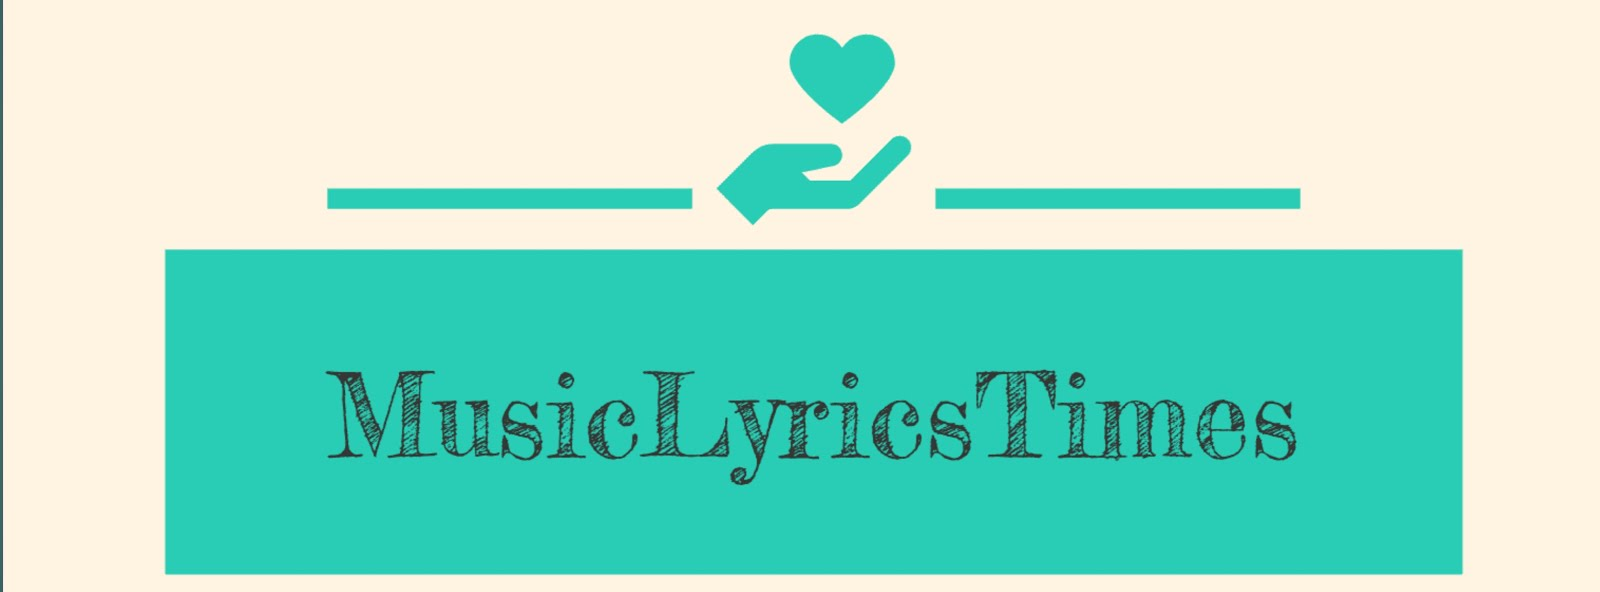 Get Song Lyrics. Music Lyrics Times.